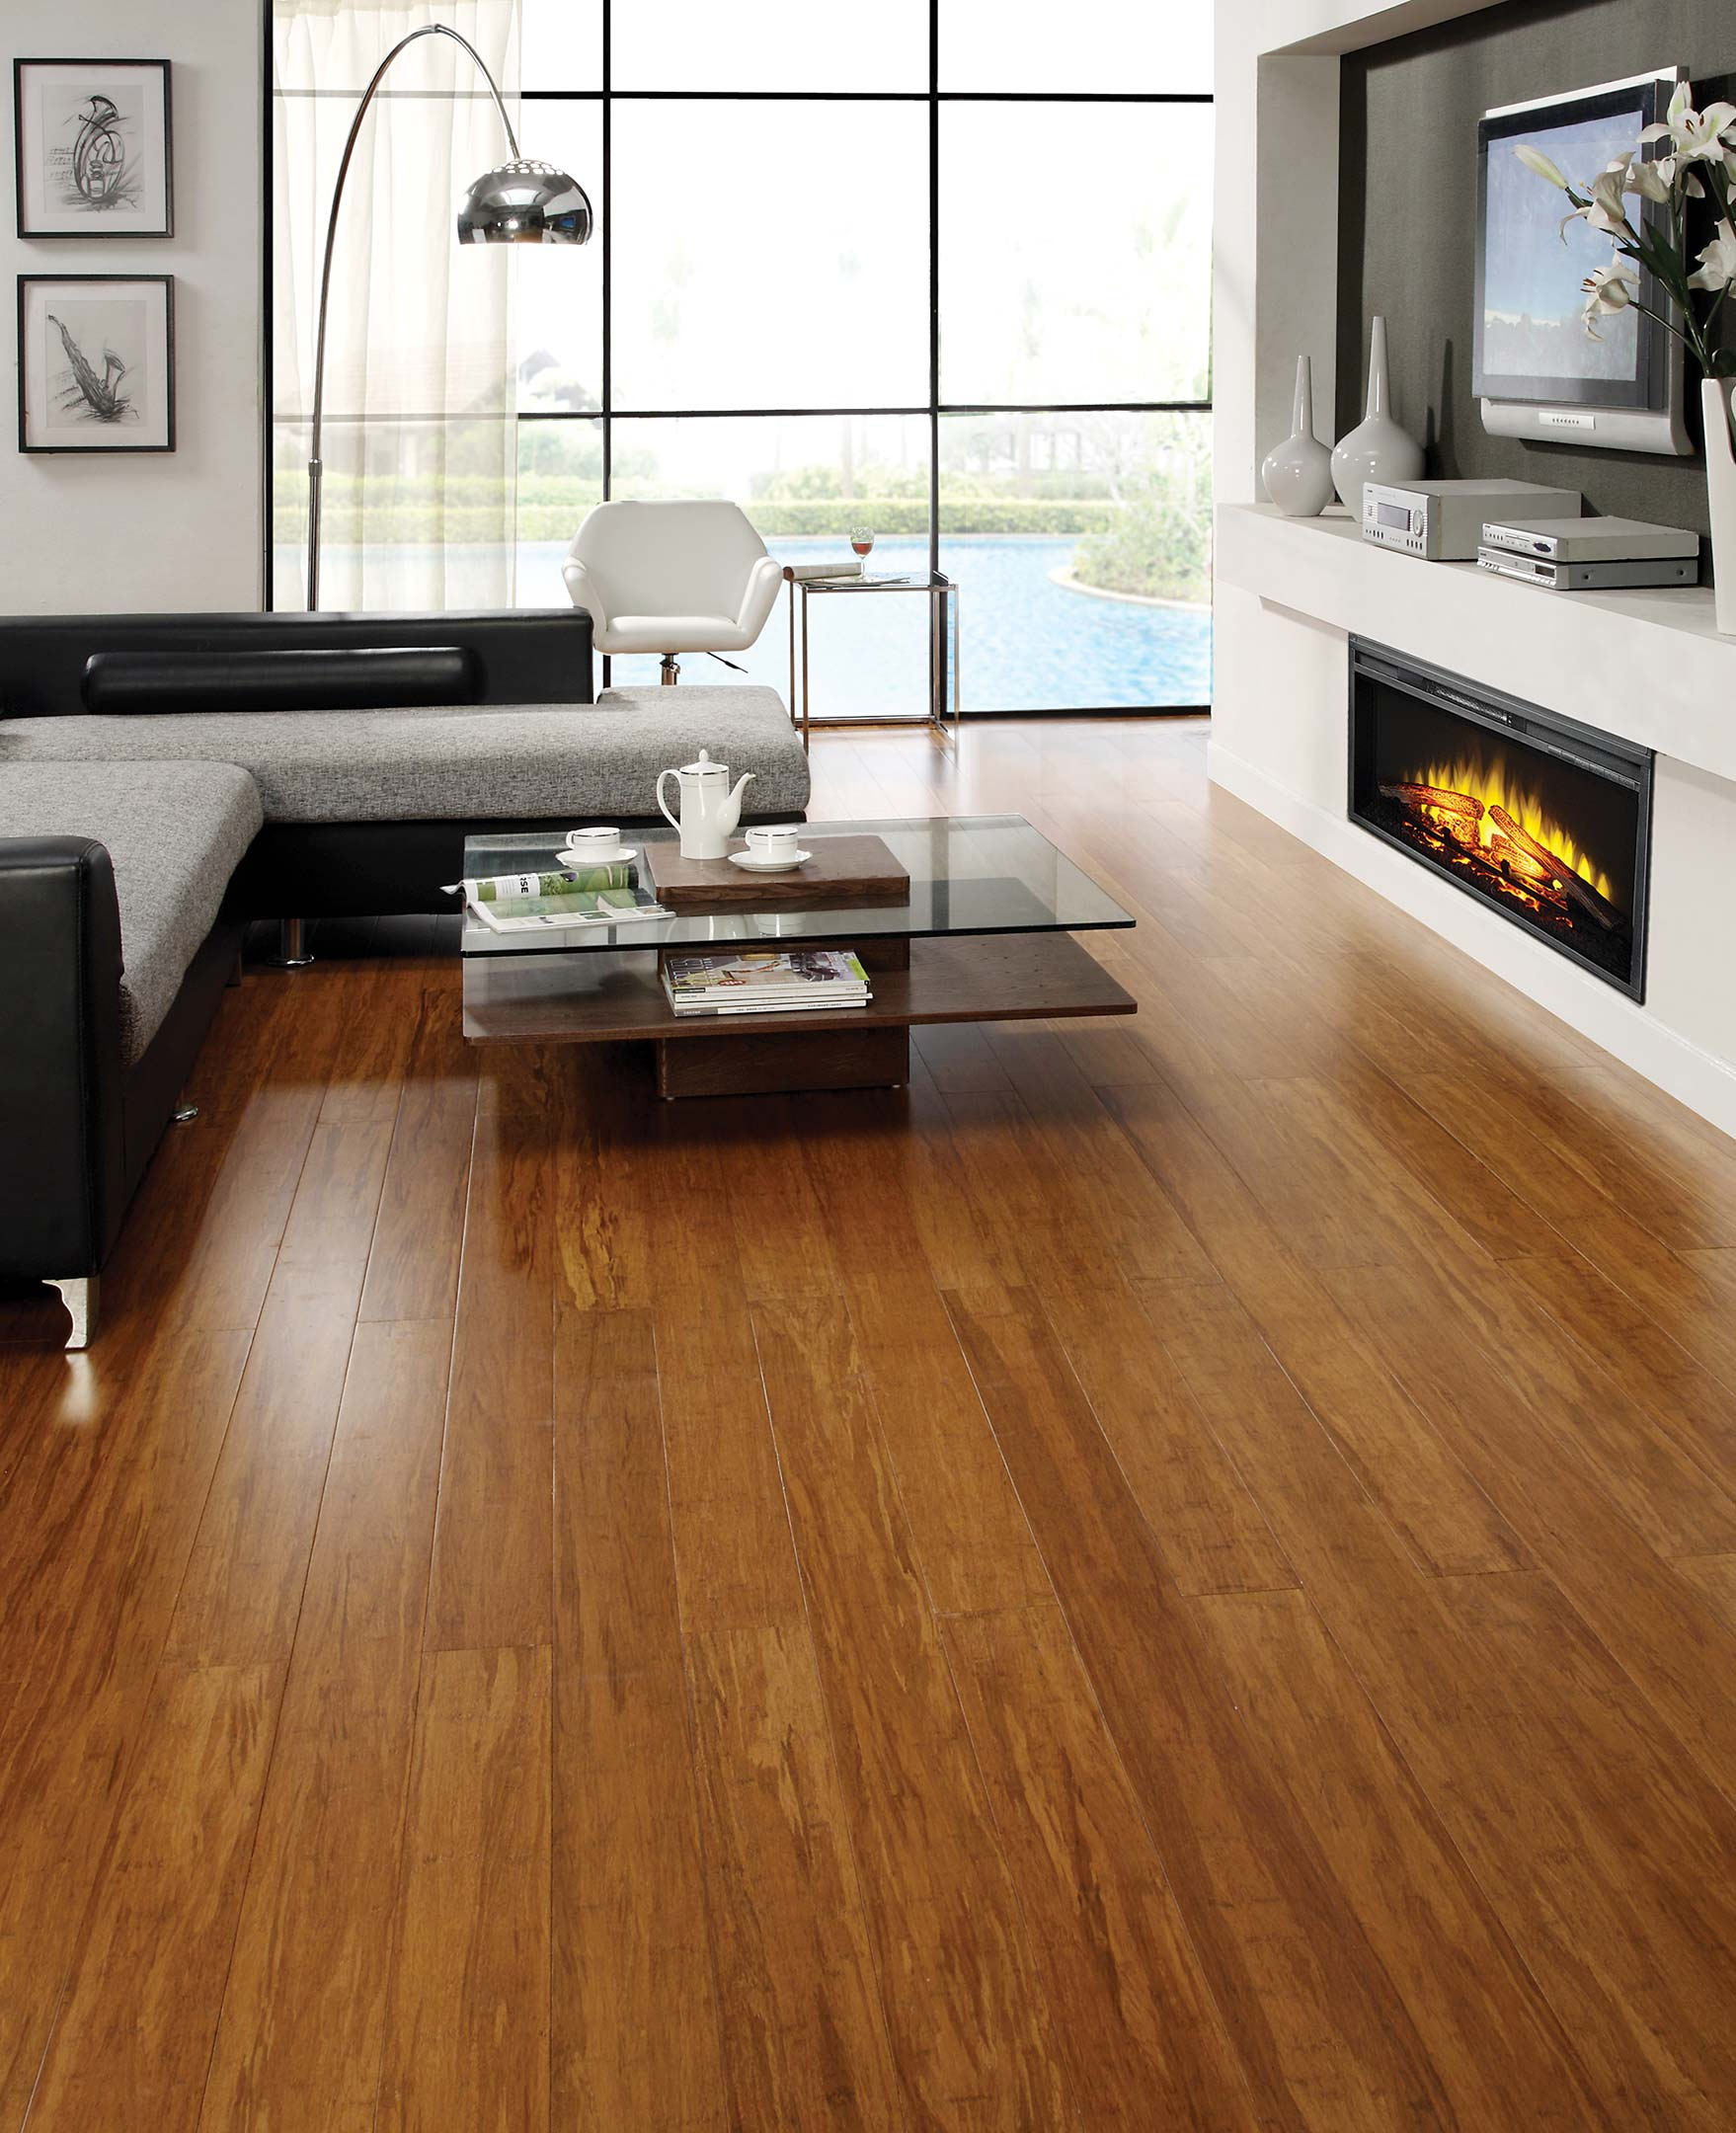 What 39 s new with bamboo floor decor for Floor and decor website